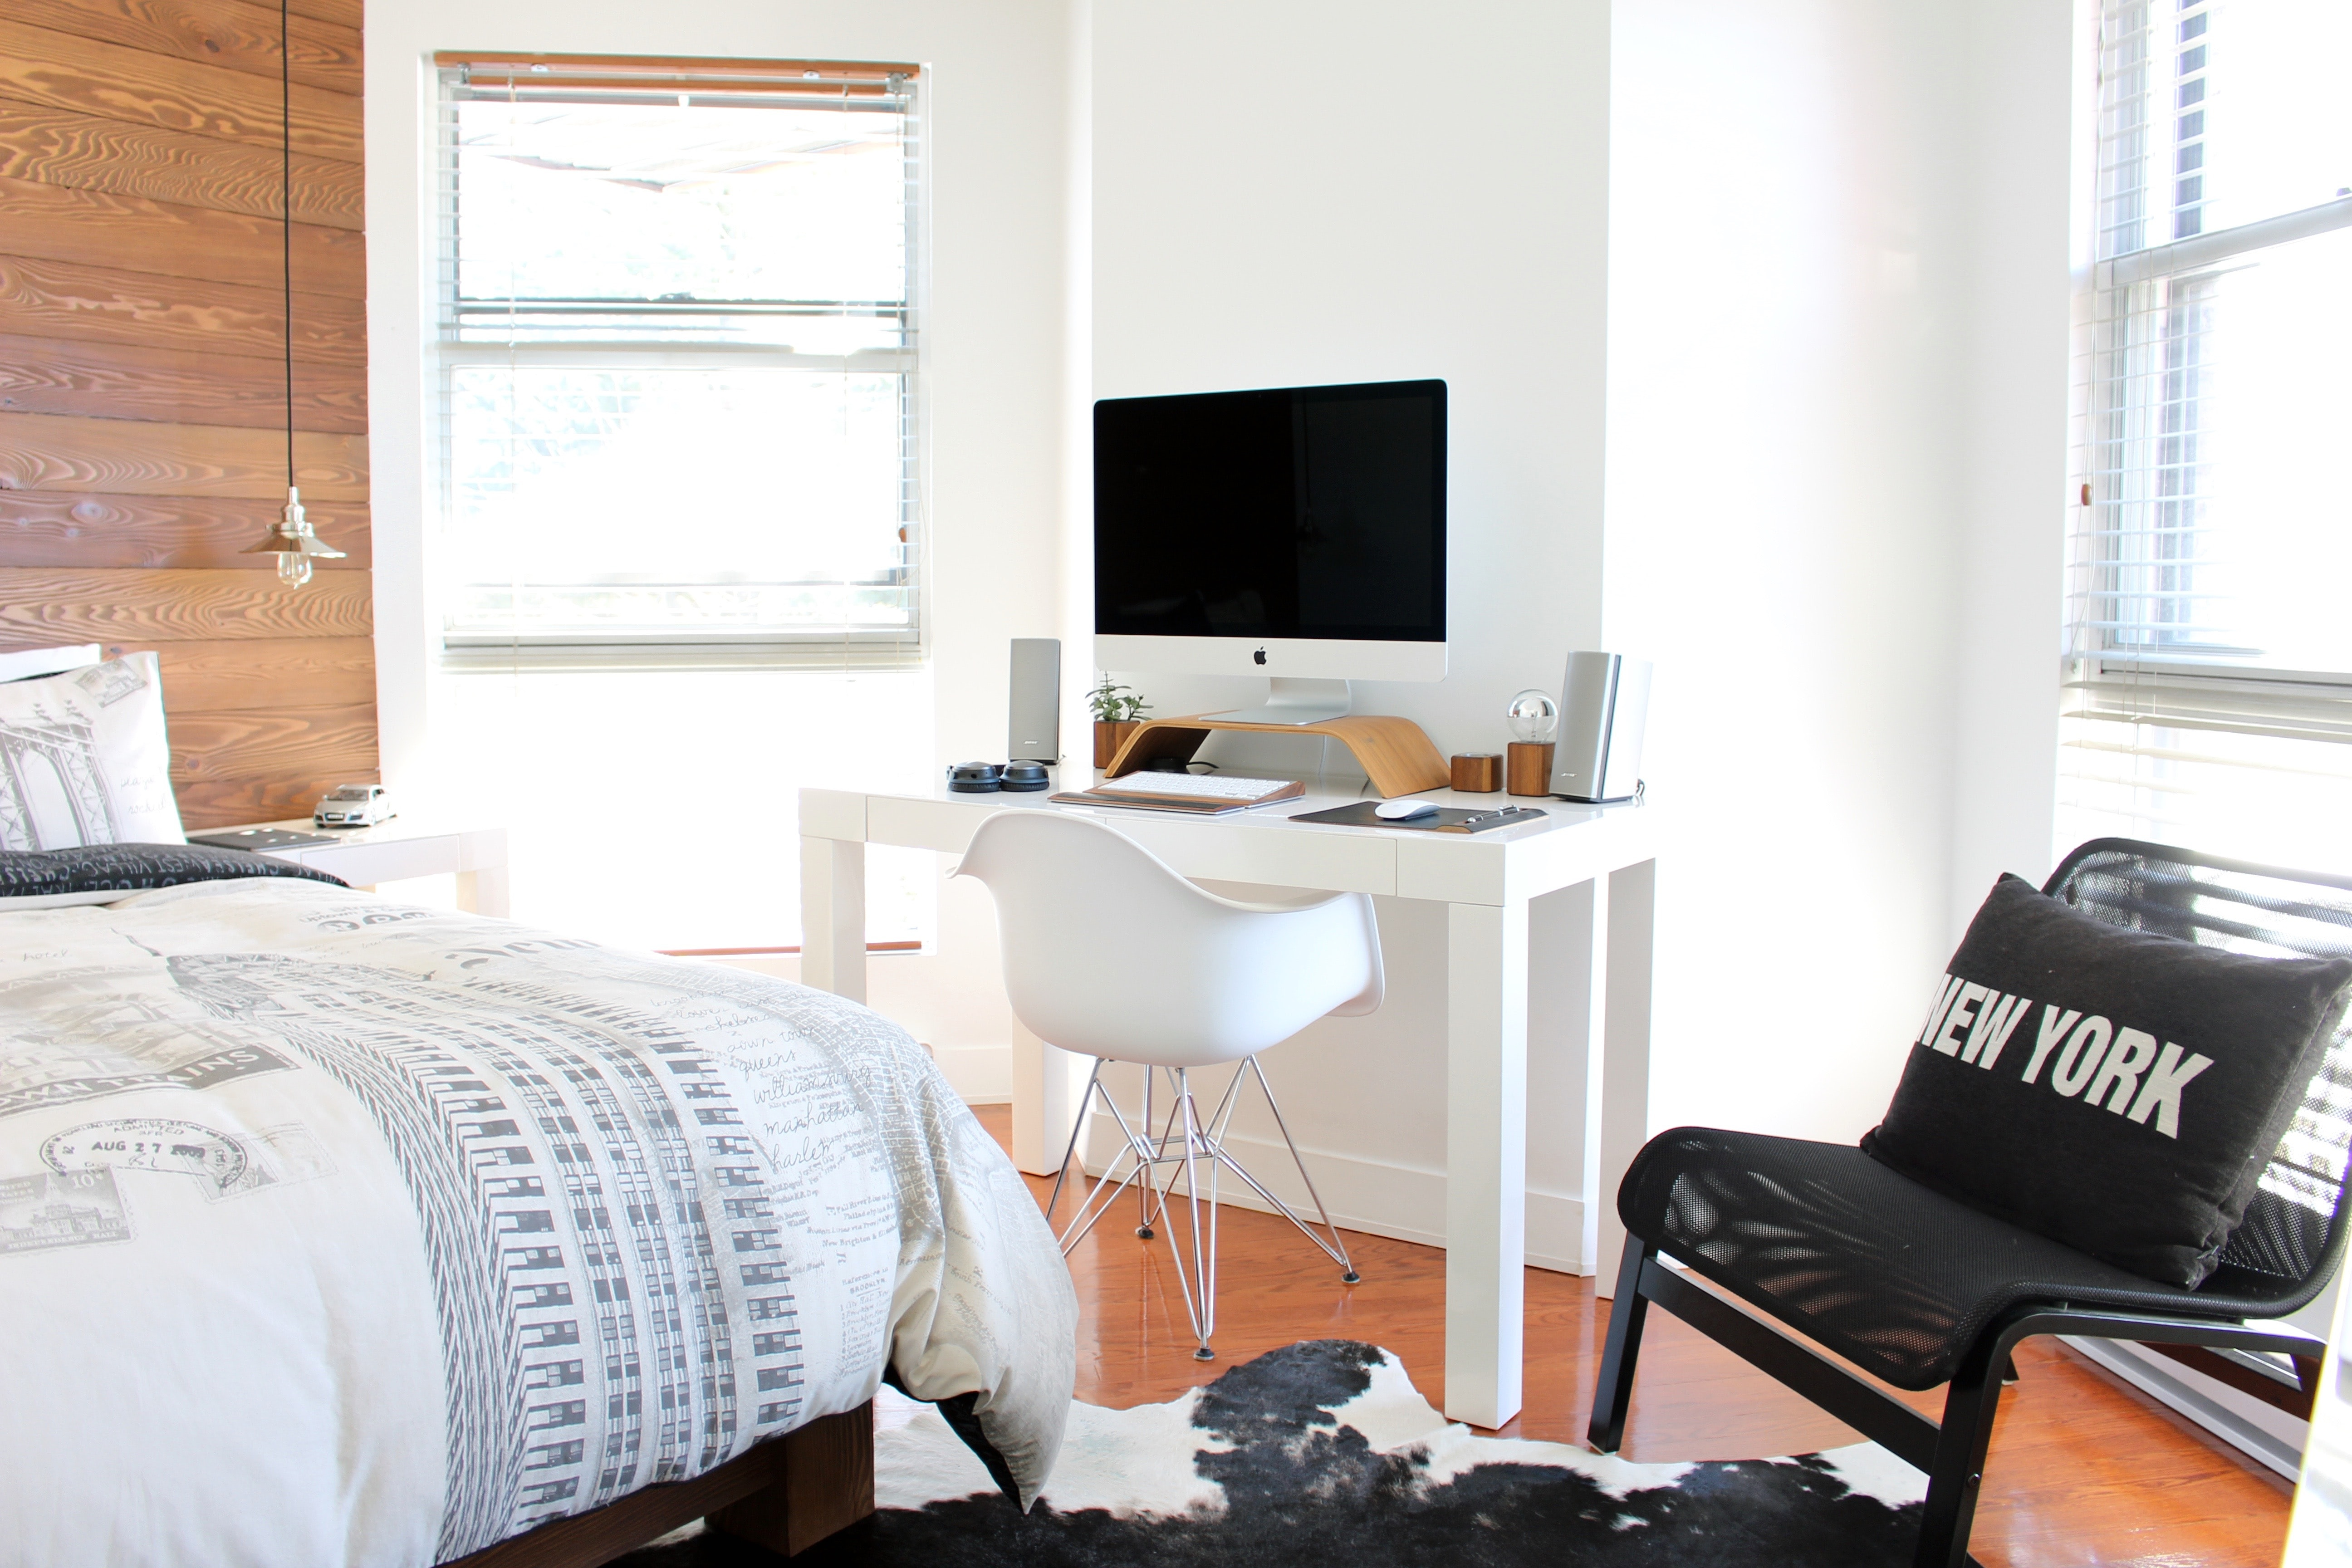 white wooden desk near bed inside the room